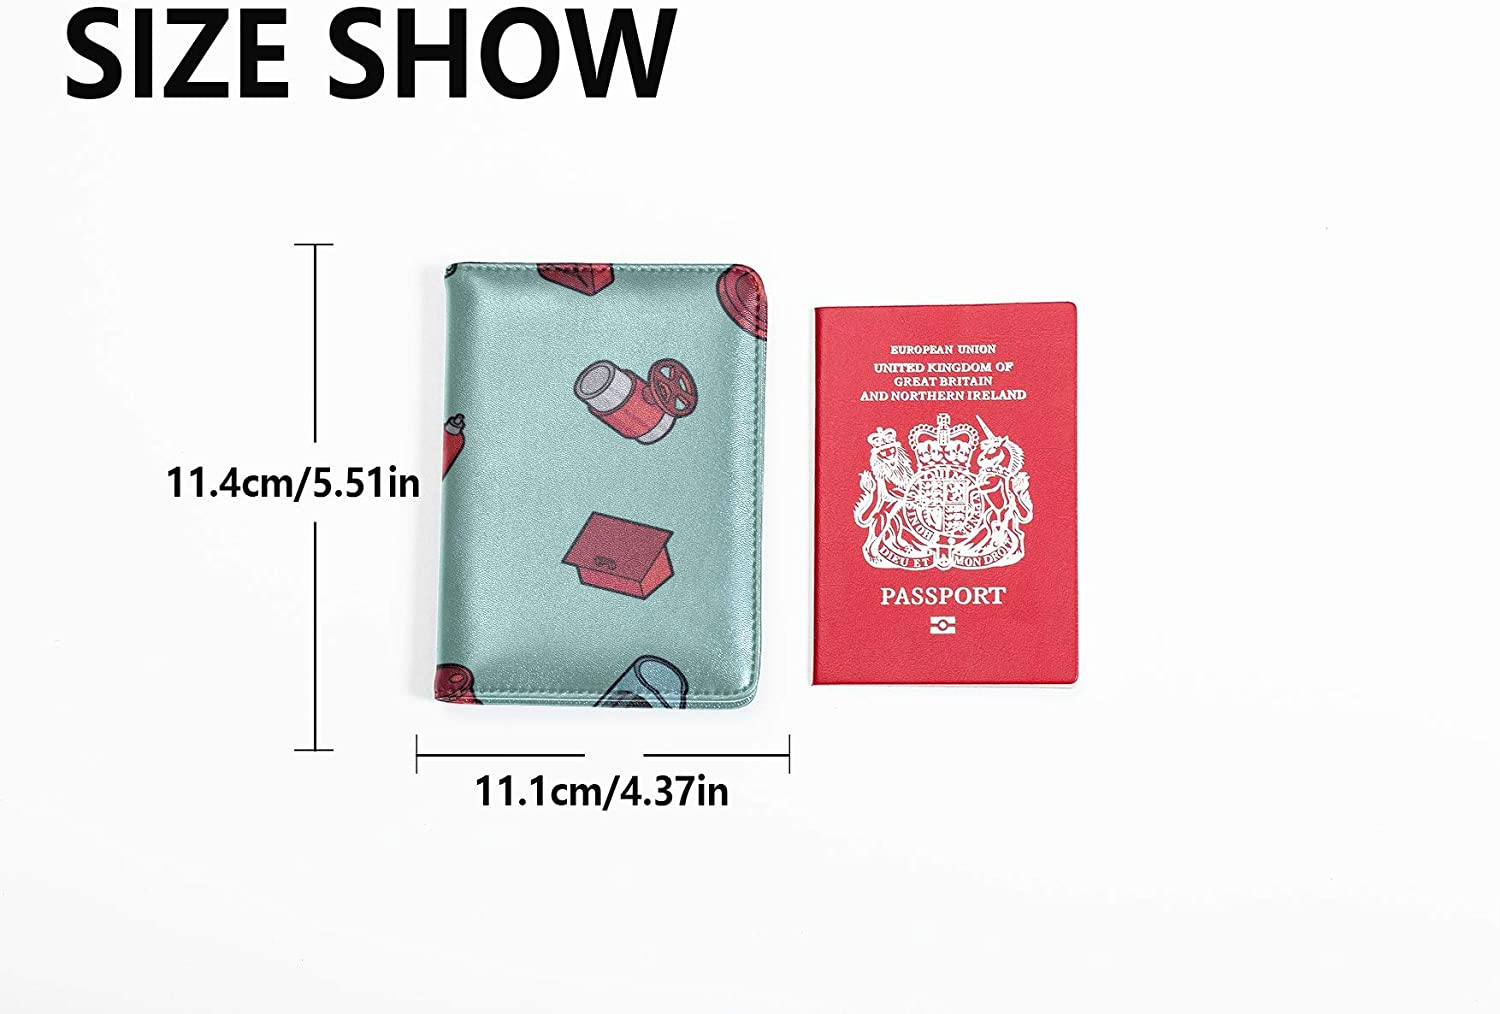 Mens Leather Passport Case Cute Creative Cartoon Fire Extinguisher U.s Passport Cover Multi Purpose Print Passport Cases Travel Wallets For Unisex 5.51x4.37 Inch